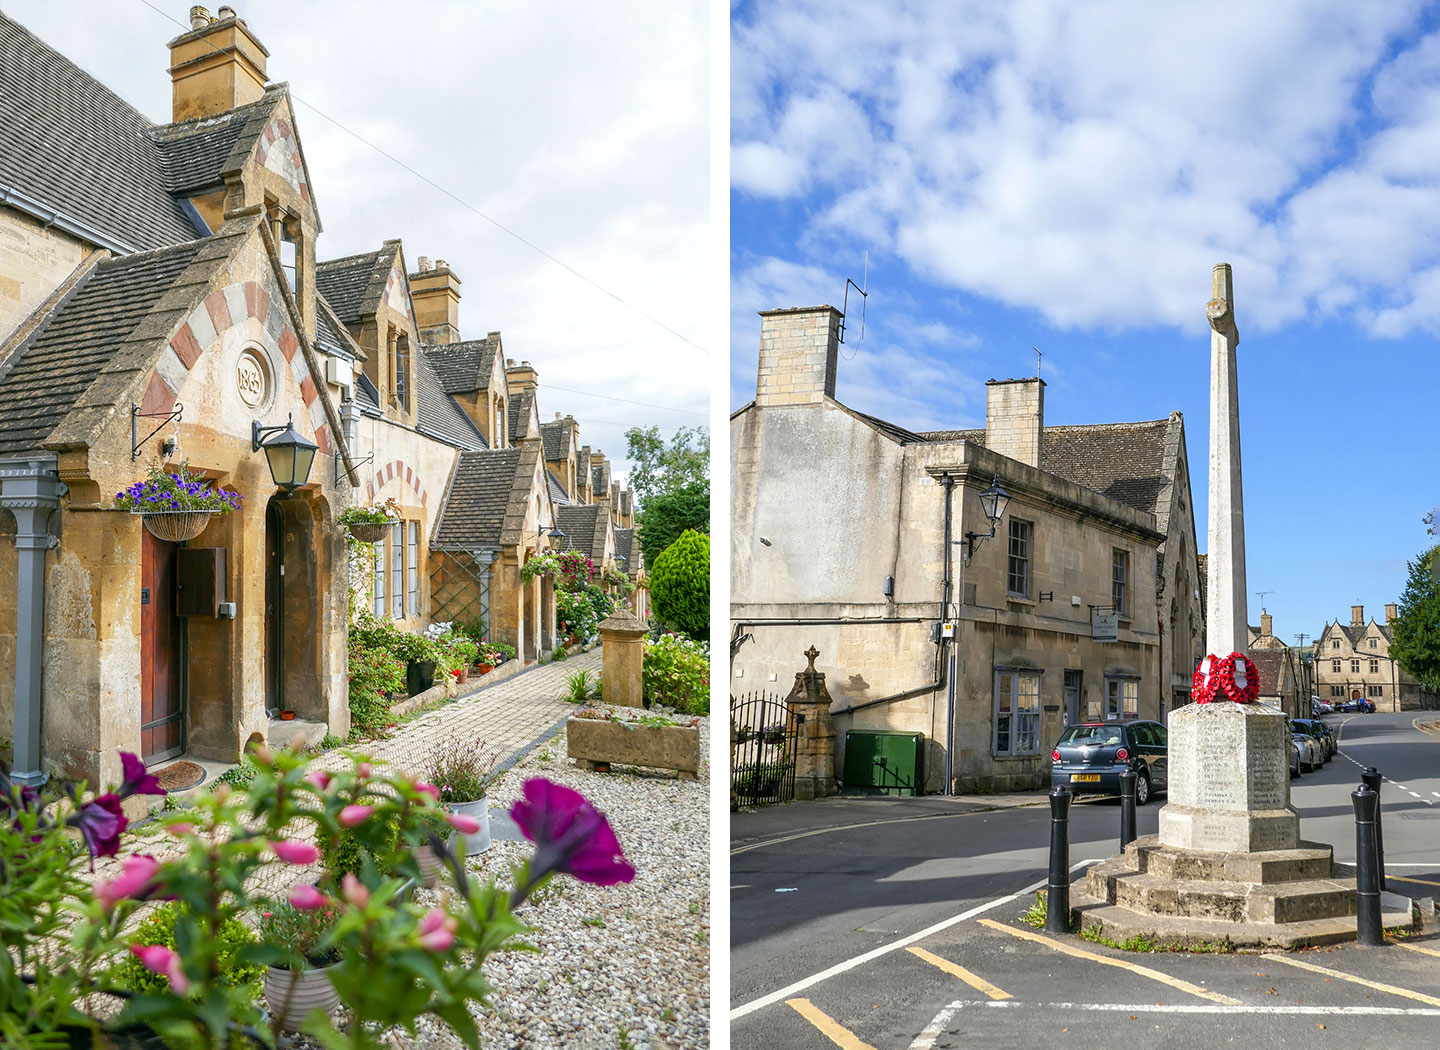 Winchcombe almshouses and high street